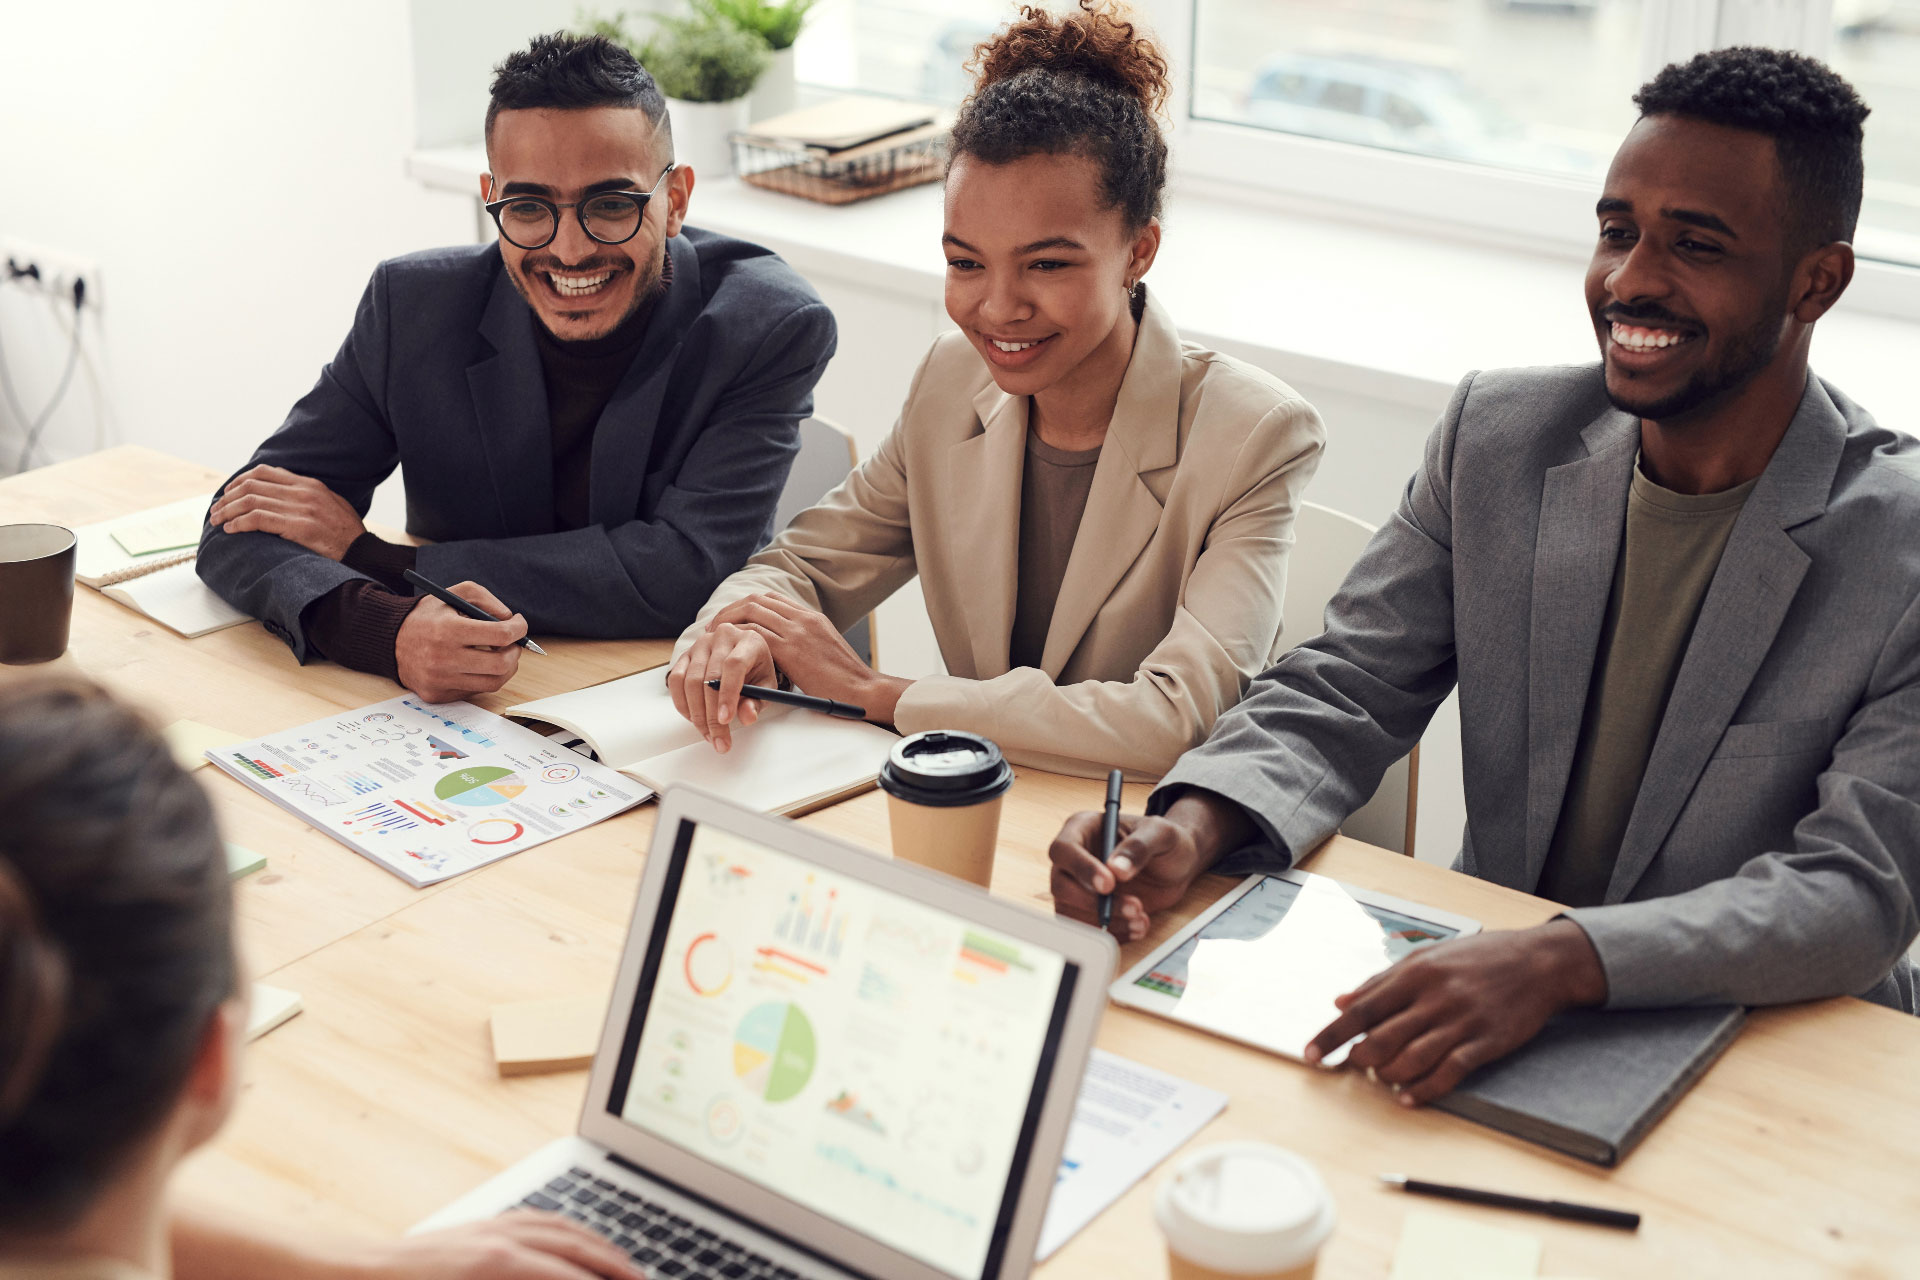 Here are employee retention ideas from other organizations to engage your team.